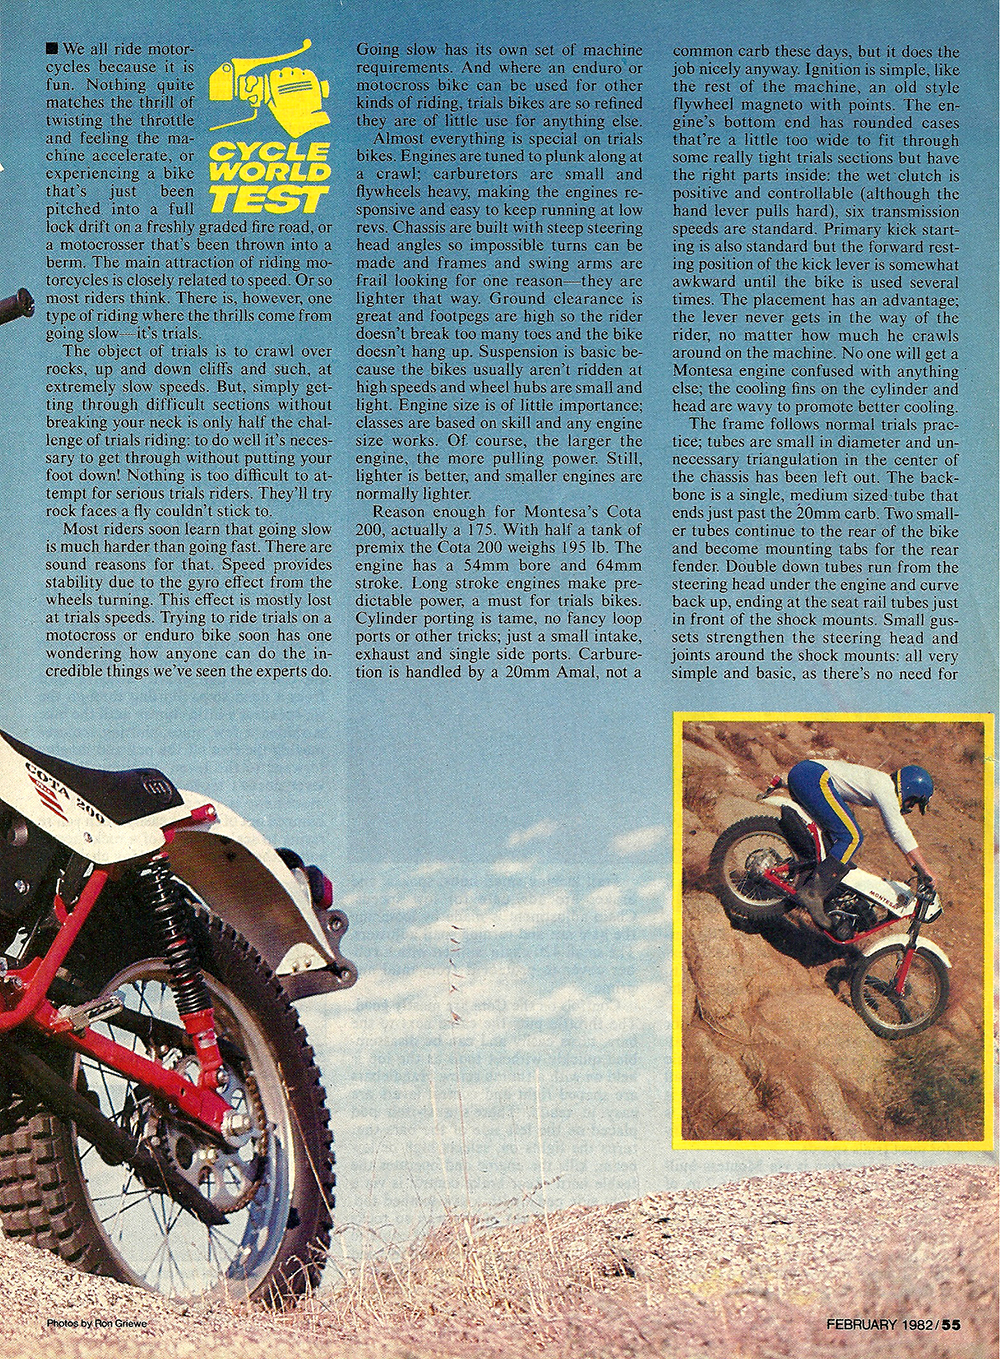 1982 Montesa cota 200 road test 02.jpg